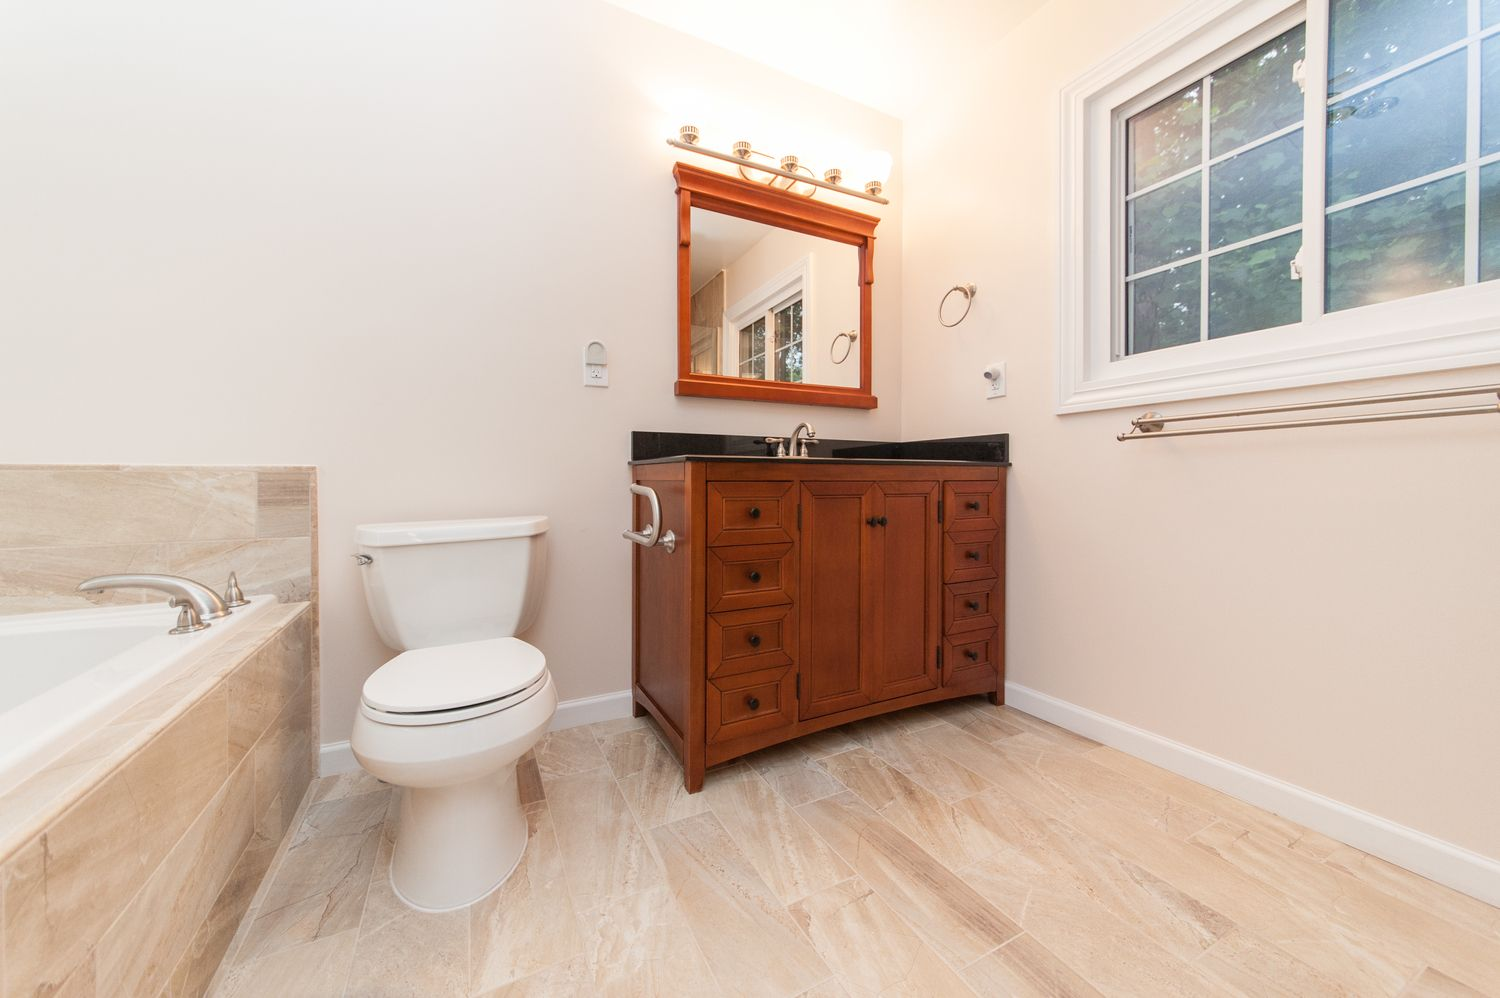 A Remodeling Company That Offers New Construction, Design, Bathroom  Remodeling, Kitchen Remodeling And Other Home Improvement Services In Washington  DC.